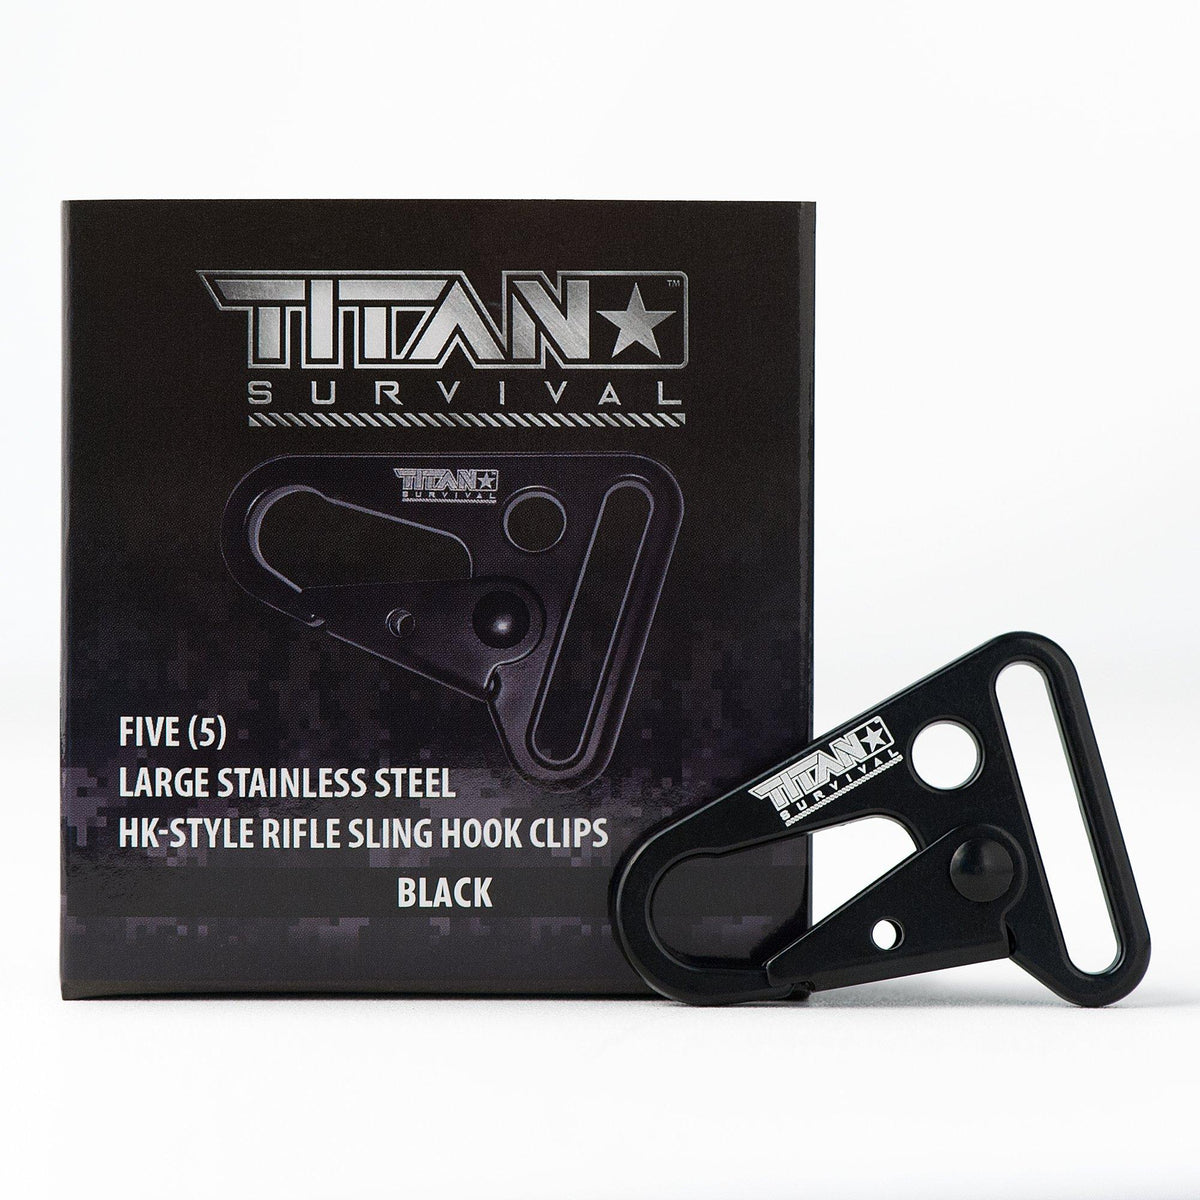 Stainless Steel HK-Style Snap Hooks, 5-Pack Accessories TITAN Survival